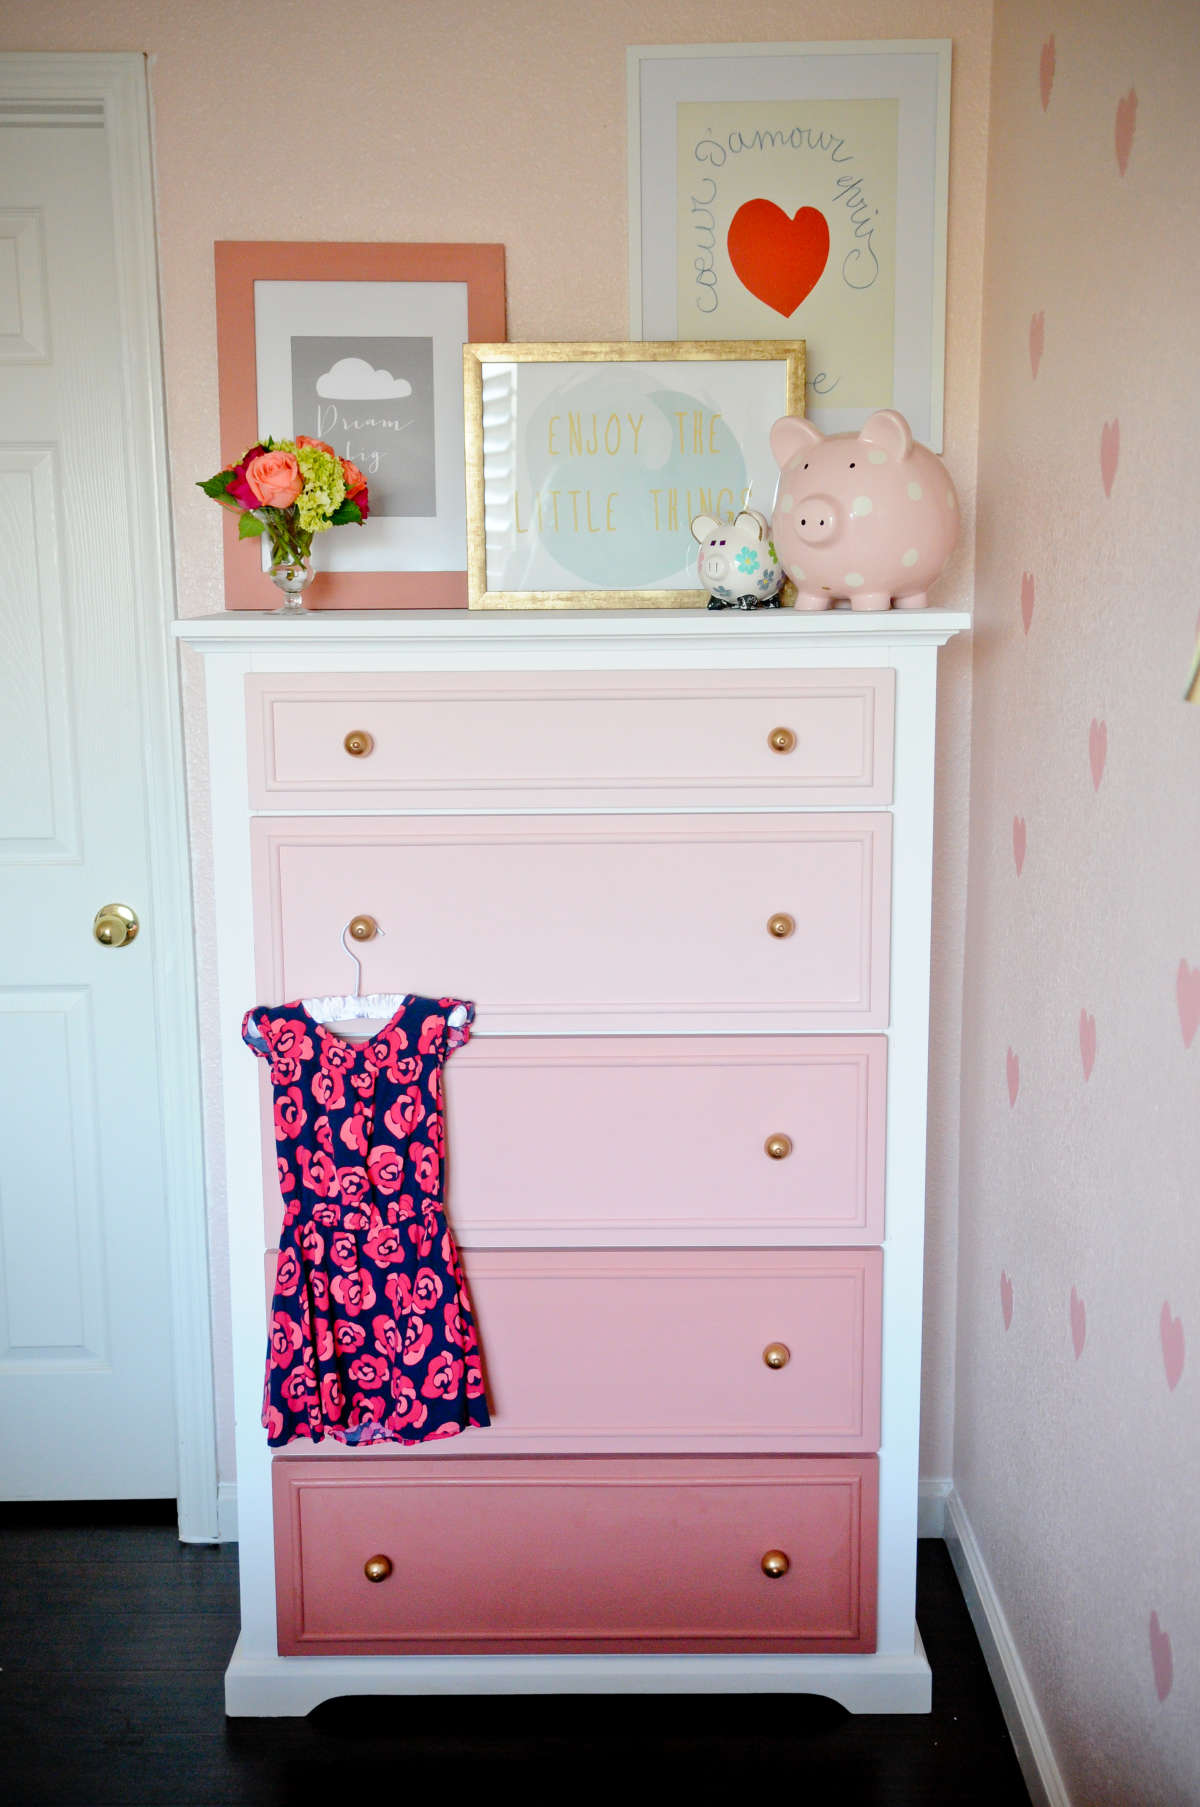 Diy kids room renovation ideas familyeducation colorful ombre dresser for kids room solutioingenieria Images